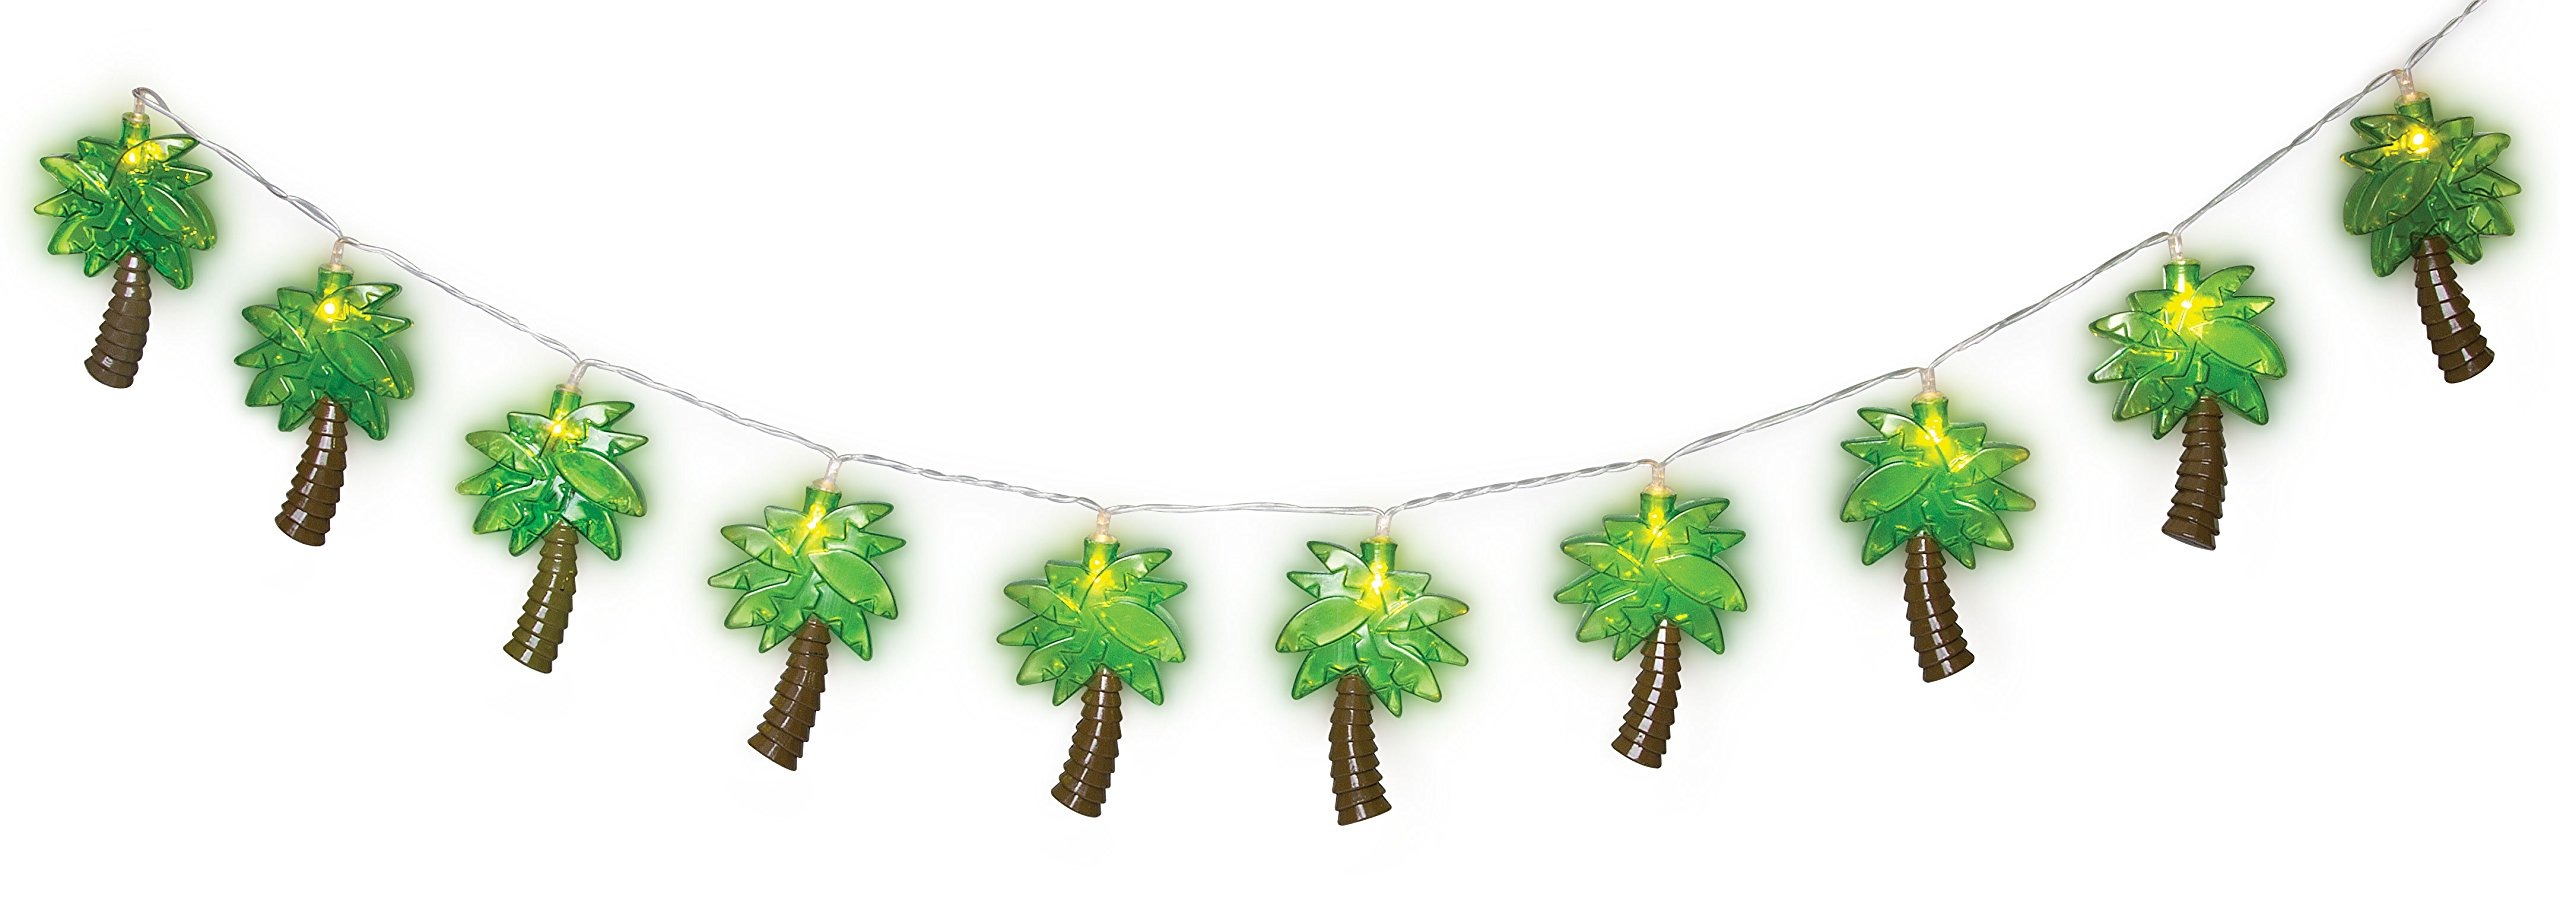 LED Palm Tree String Lights - Battery Operated Party Palm Tree Light 10 Pc Set - Home Wall Patio Deck Garden Indoor Outdoor Decor Bedroom Birthday Wedding Christmas Baby Shower Decoration